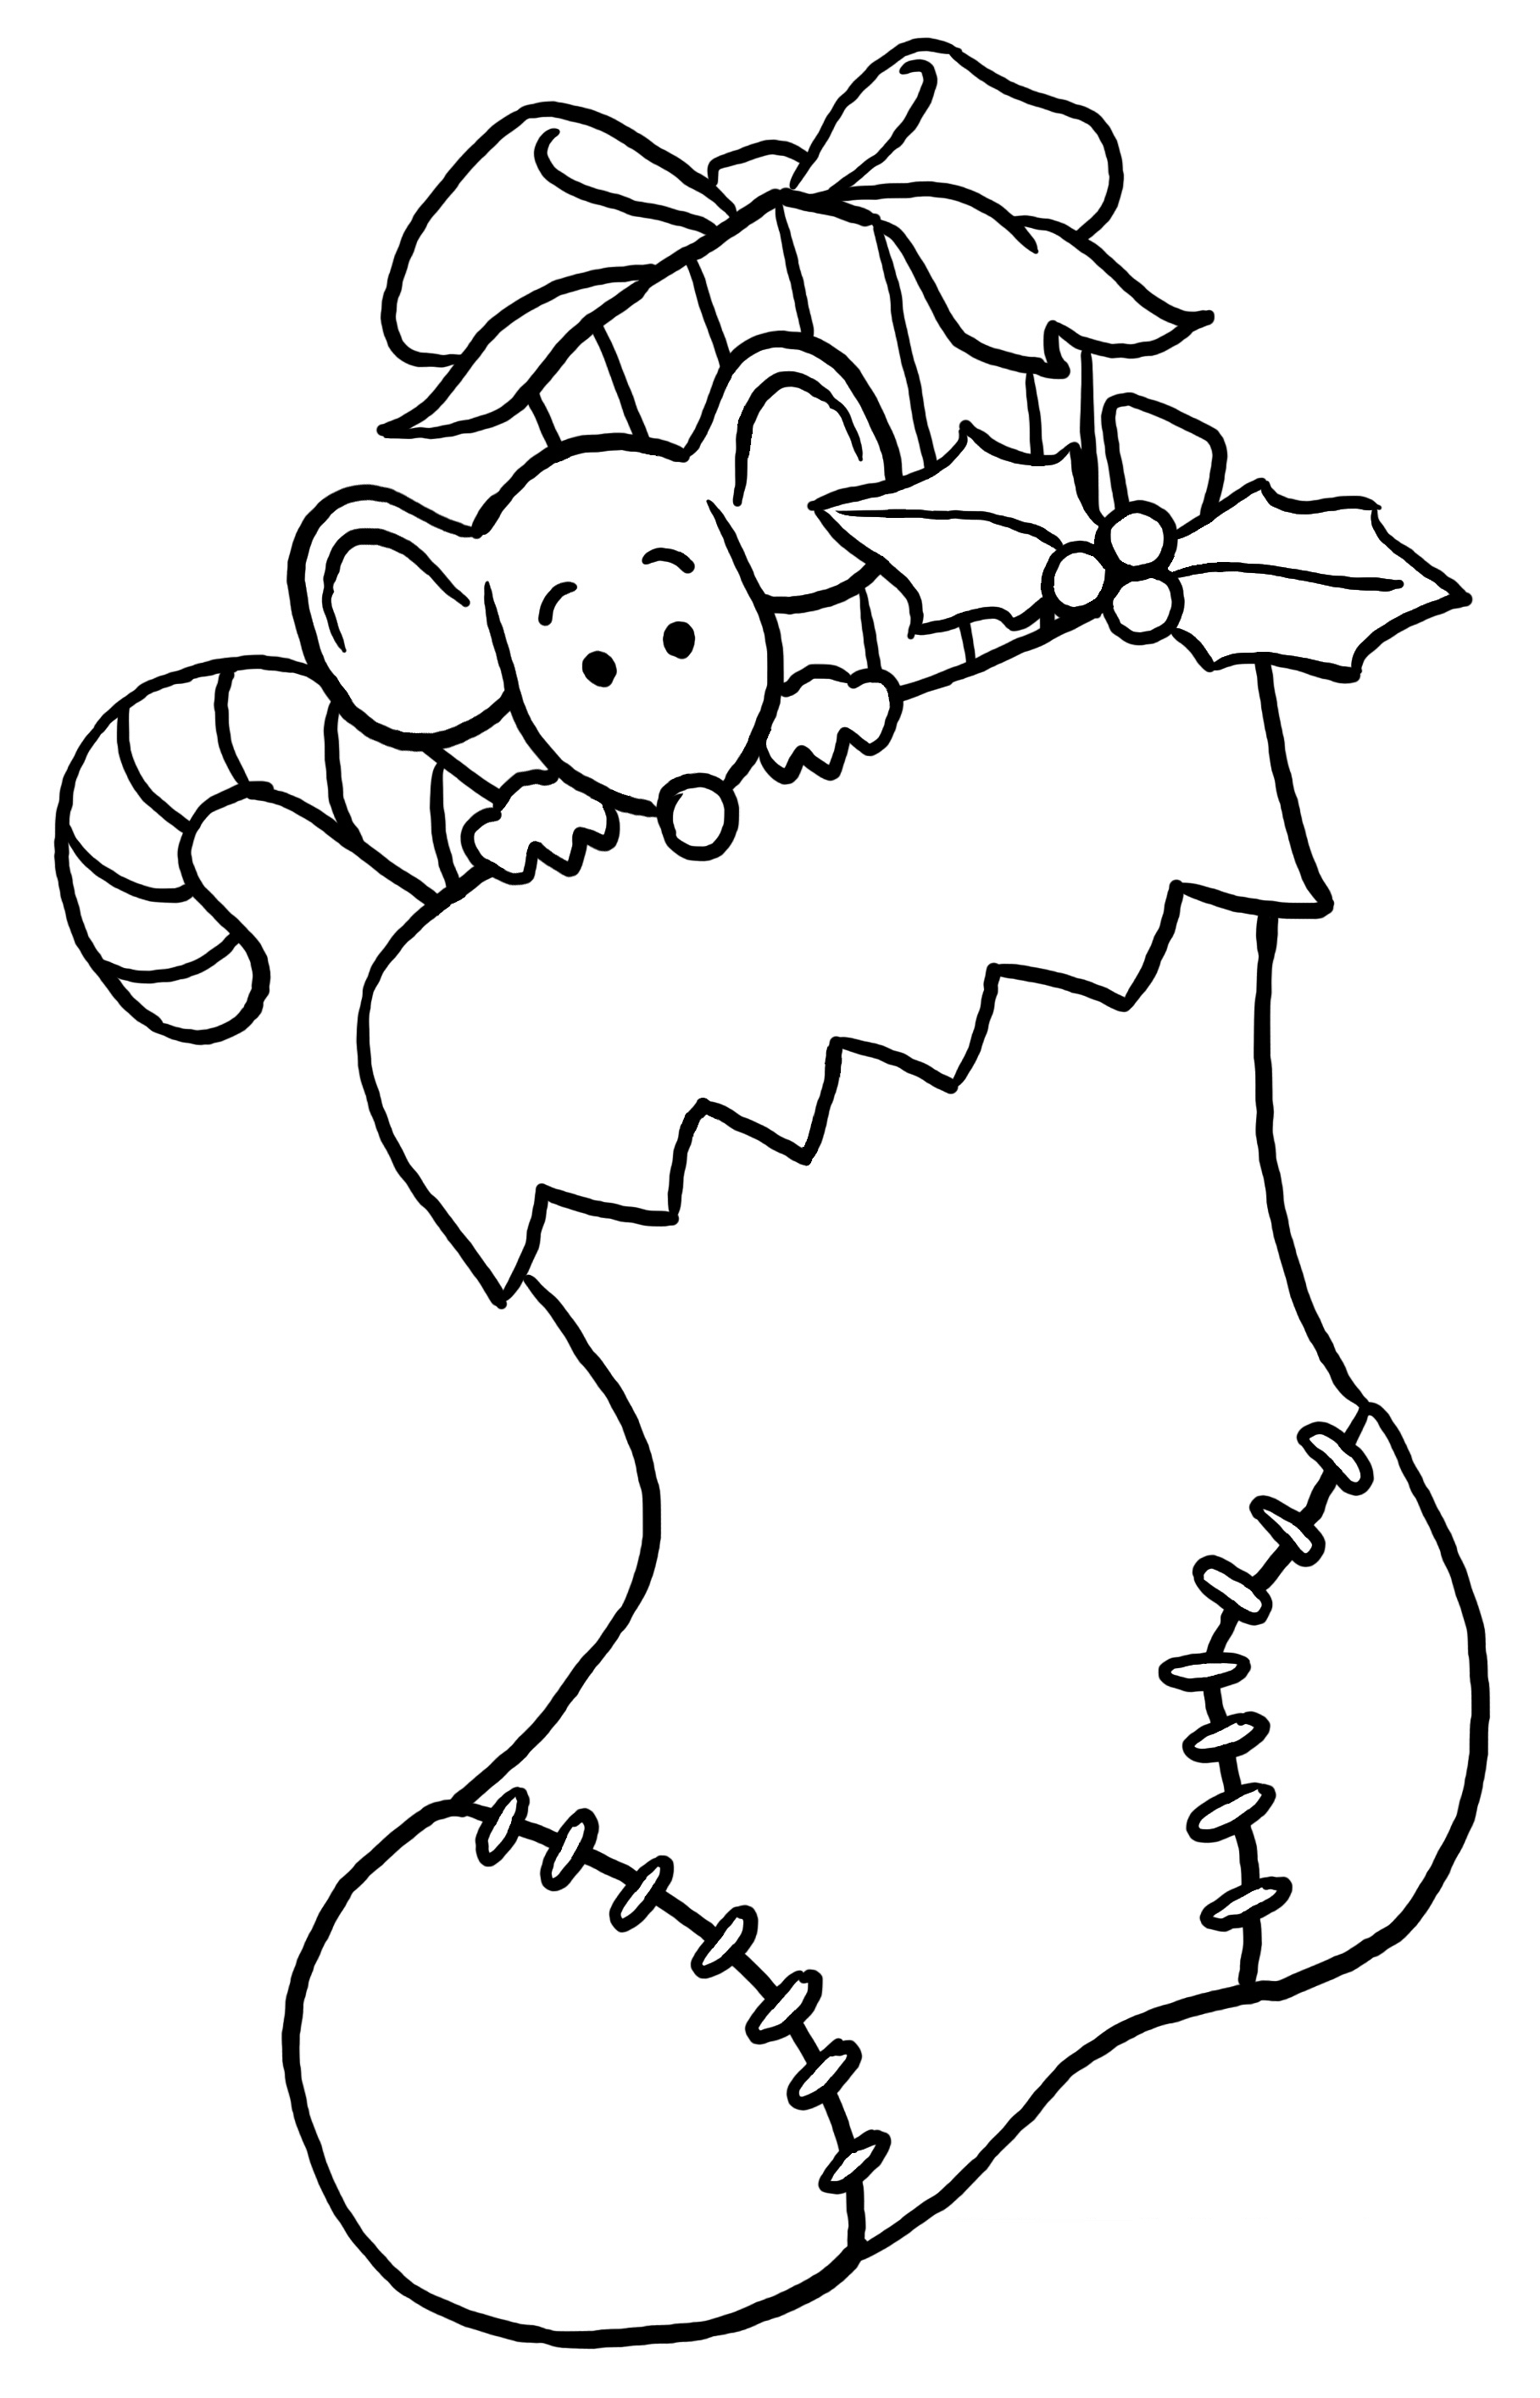 Christmas Coloring Pages Printable Free - Free Printable Christmas Coloring Pages Printable